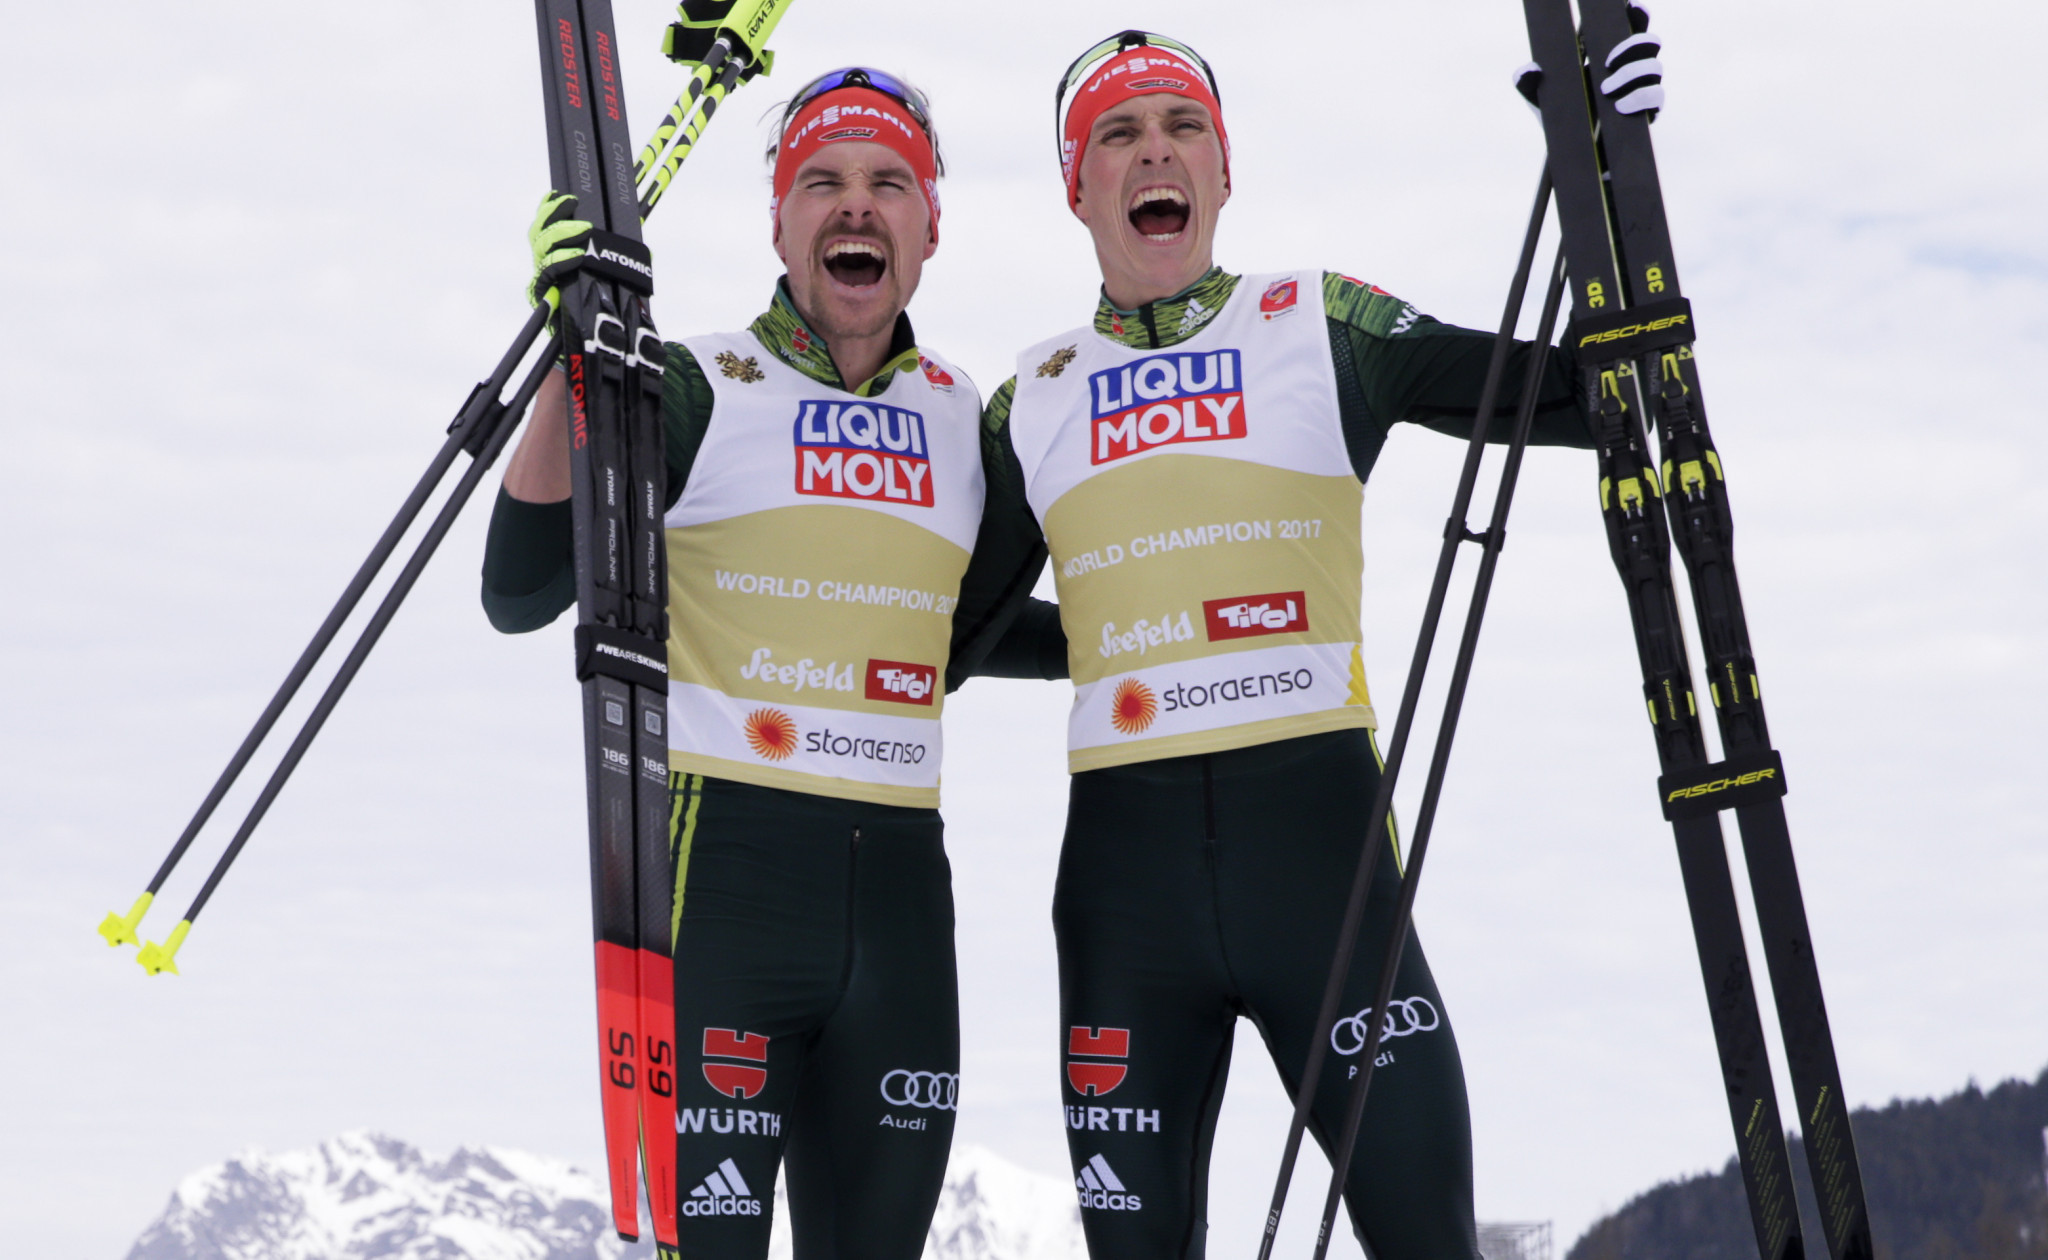 Eric Frenzel and Fabian Rießle claimed victory in the team sprint in Val di Fiemme ©Getty Images